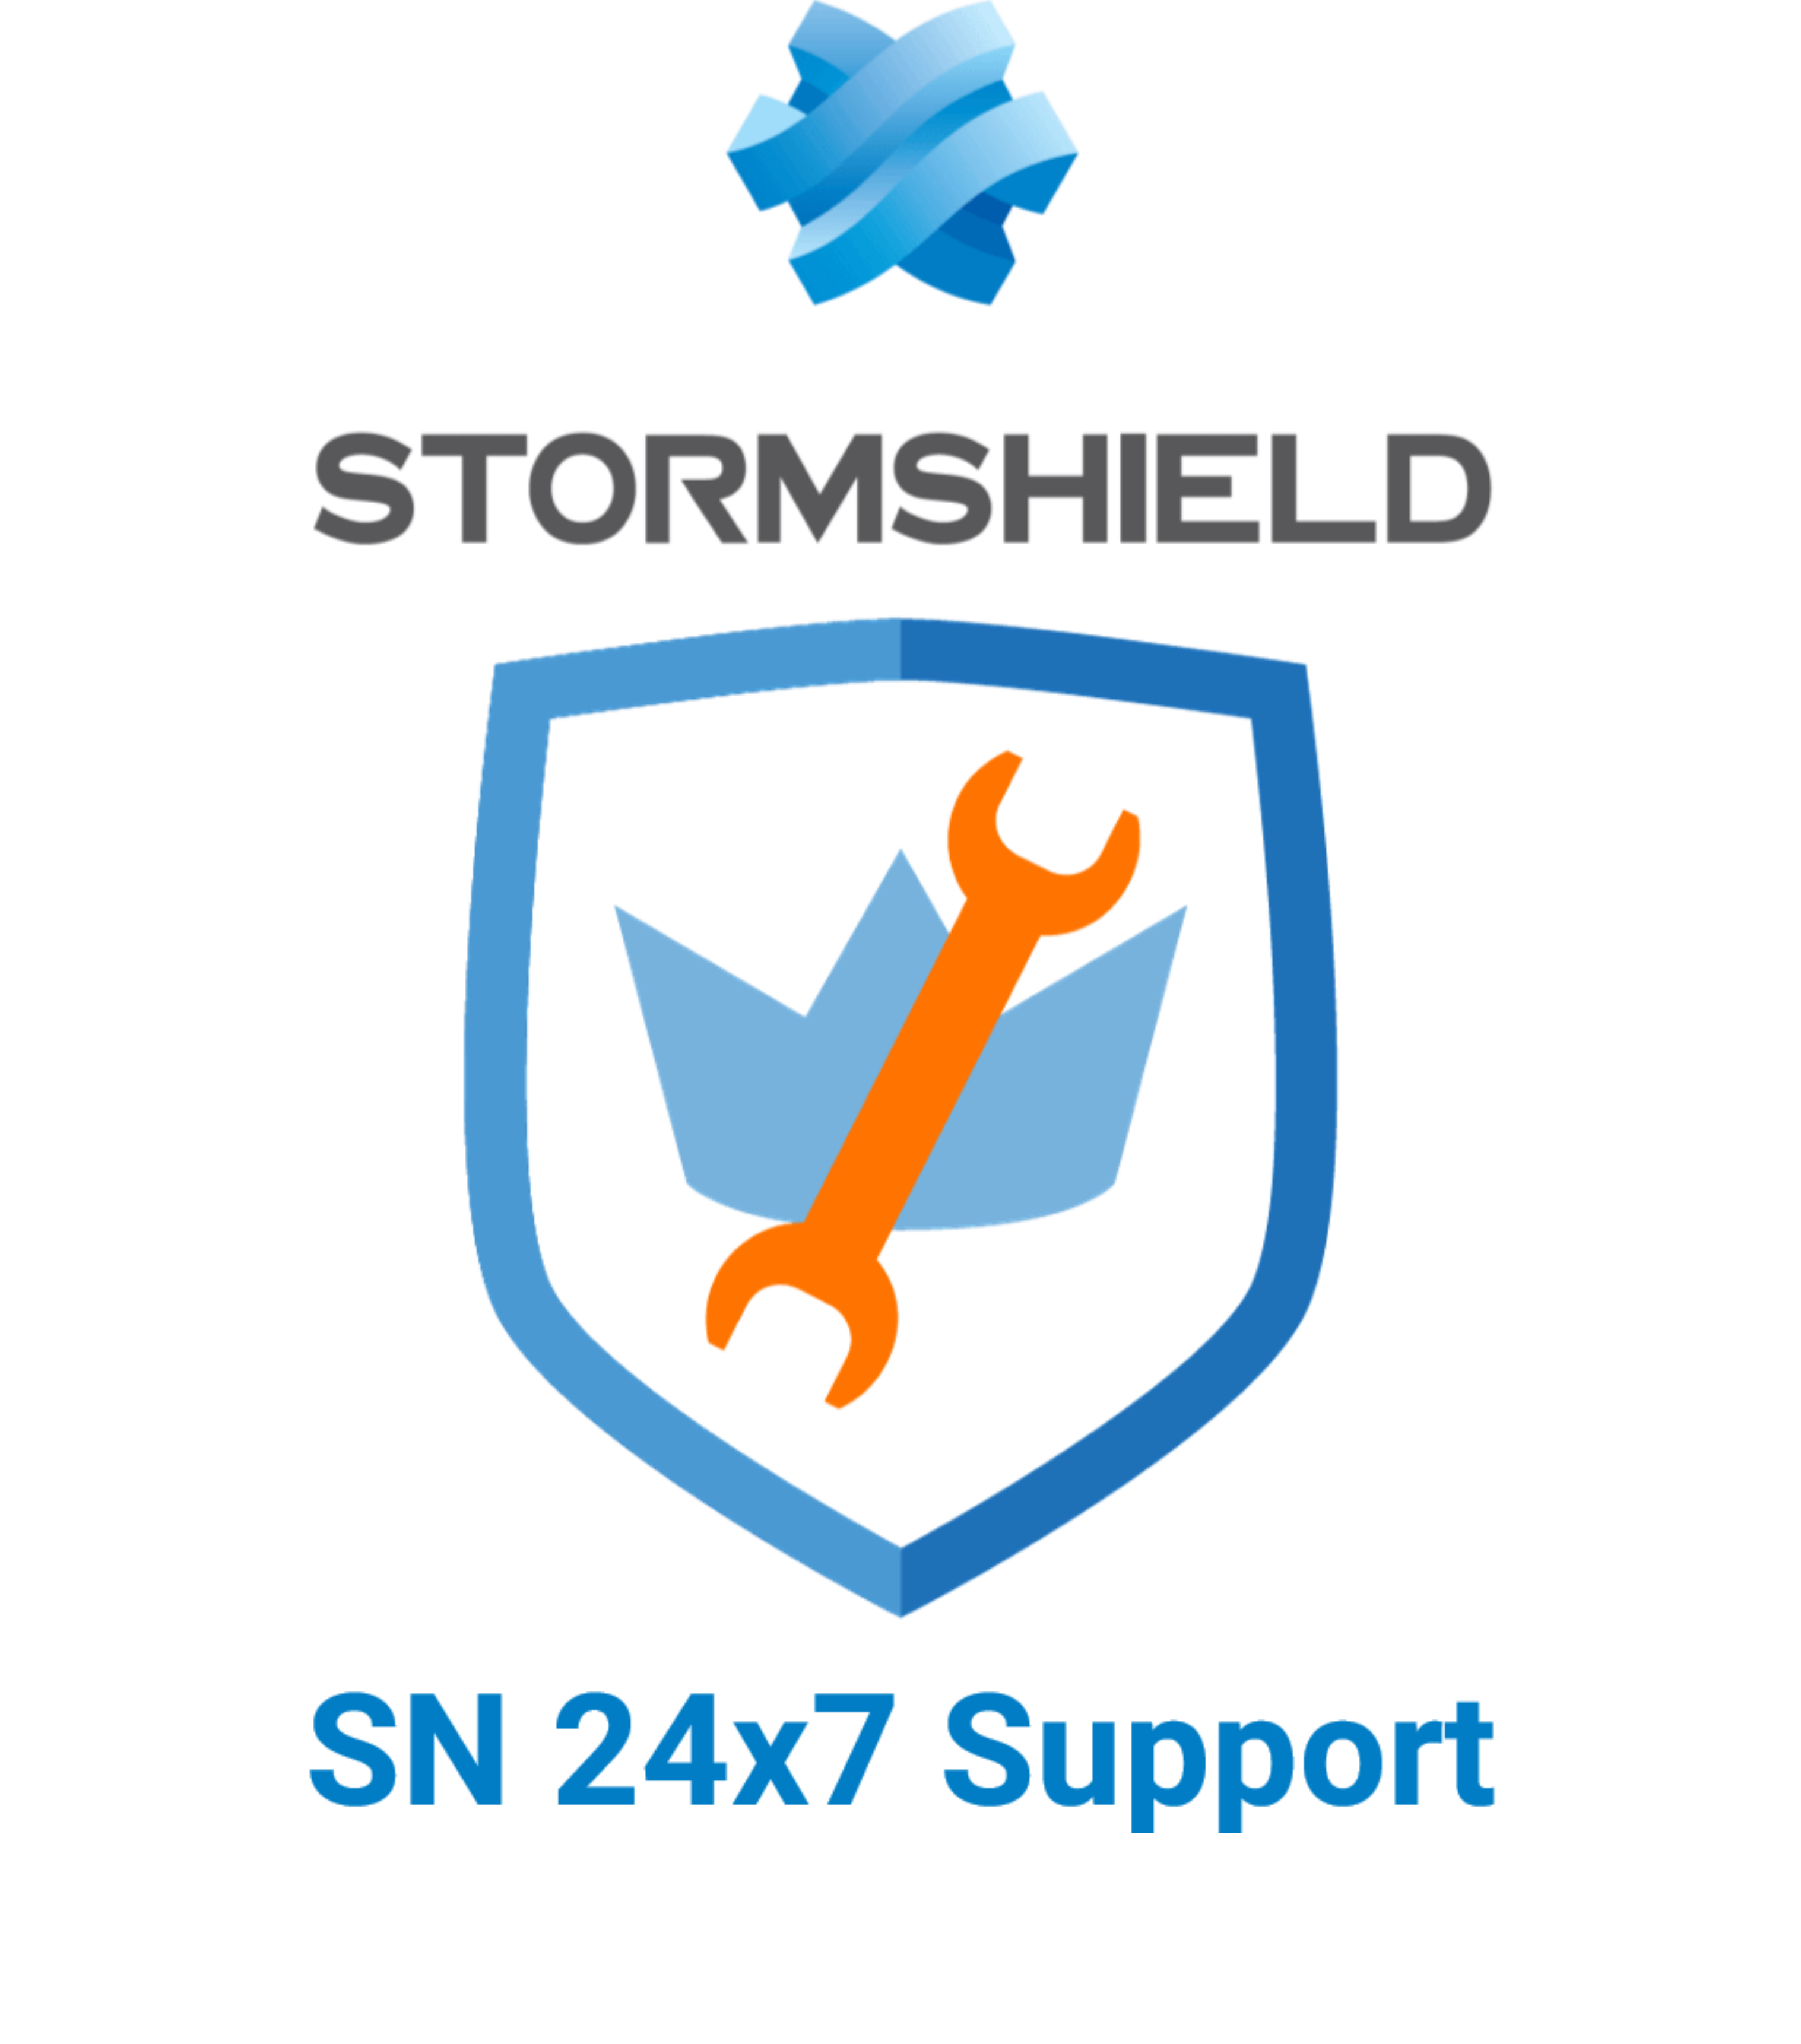 Stormshield SN160W 24x7 Support